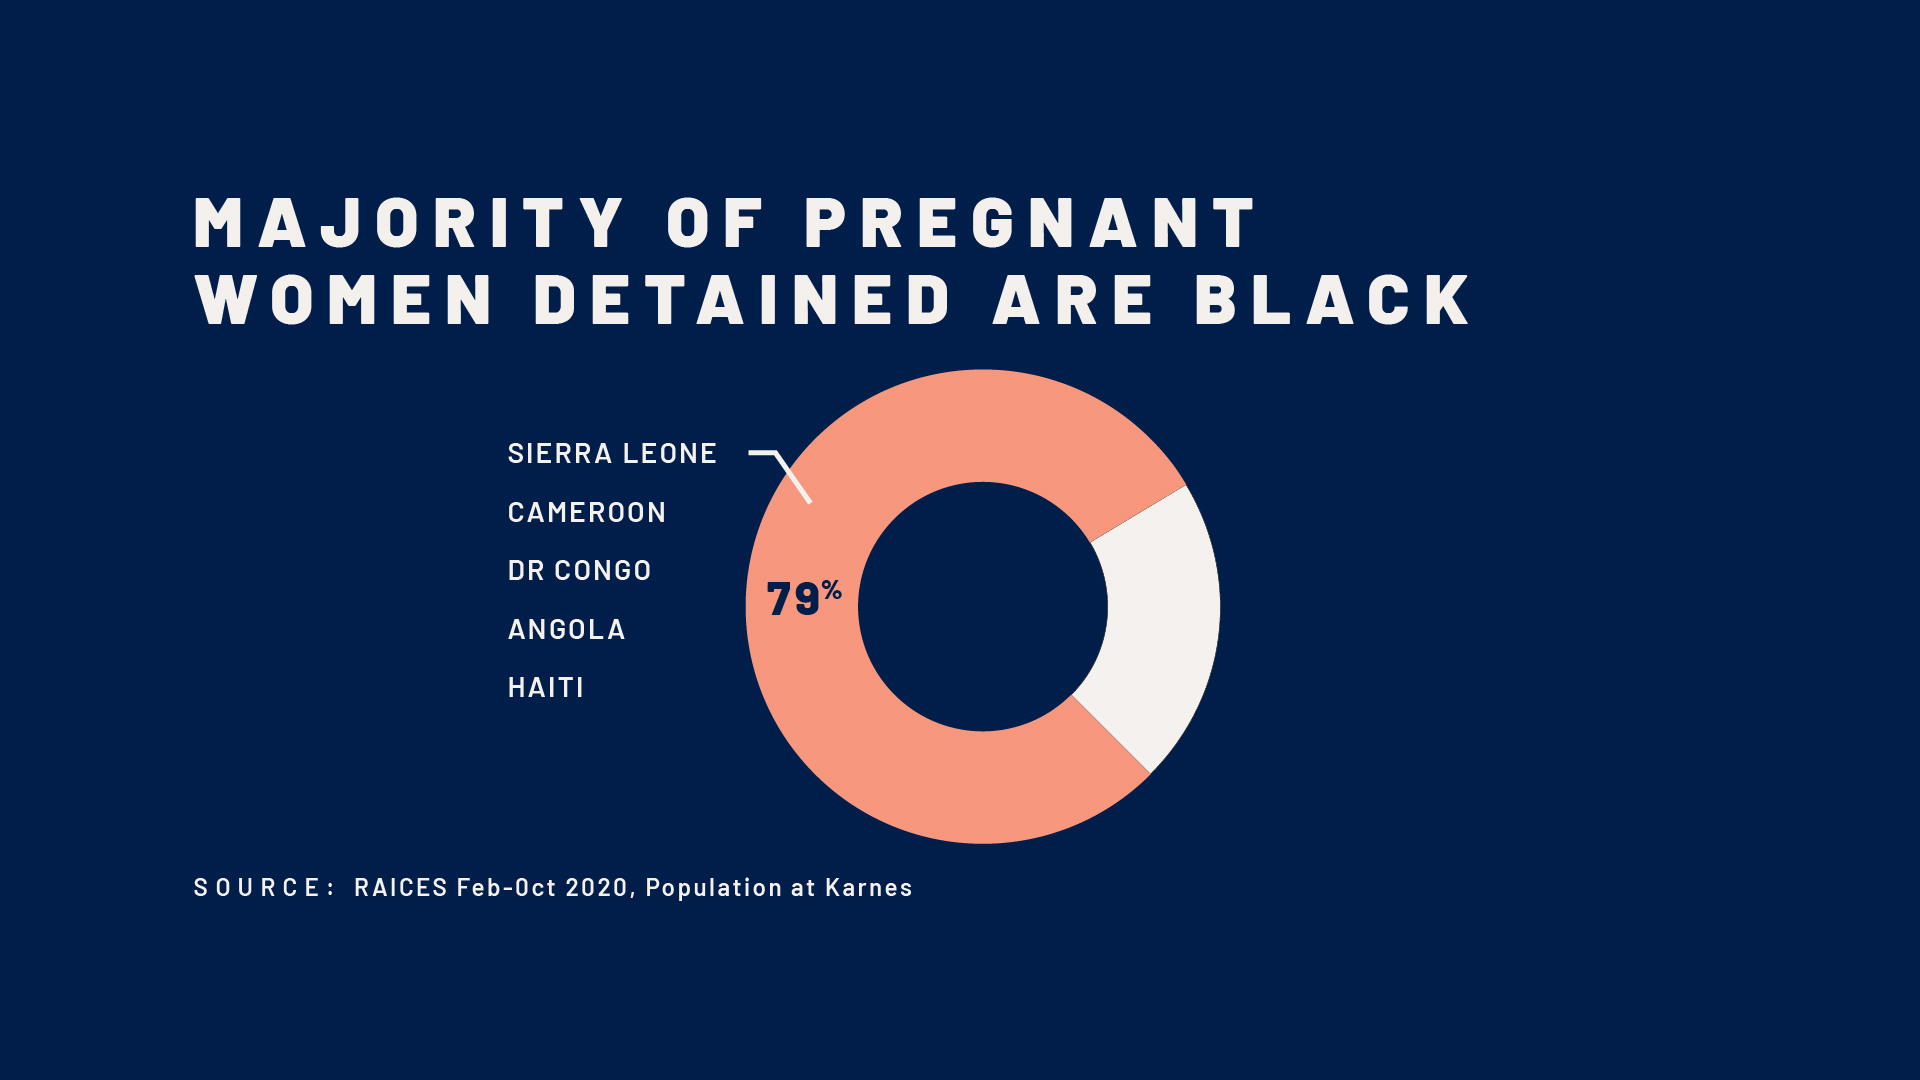 majority-pregnant-women-are-blackand-detained-infographic